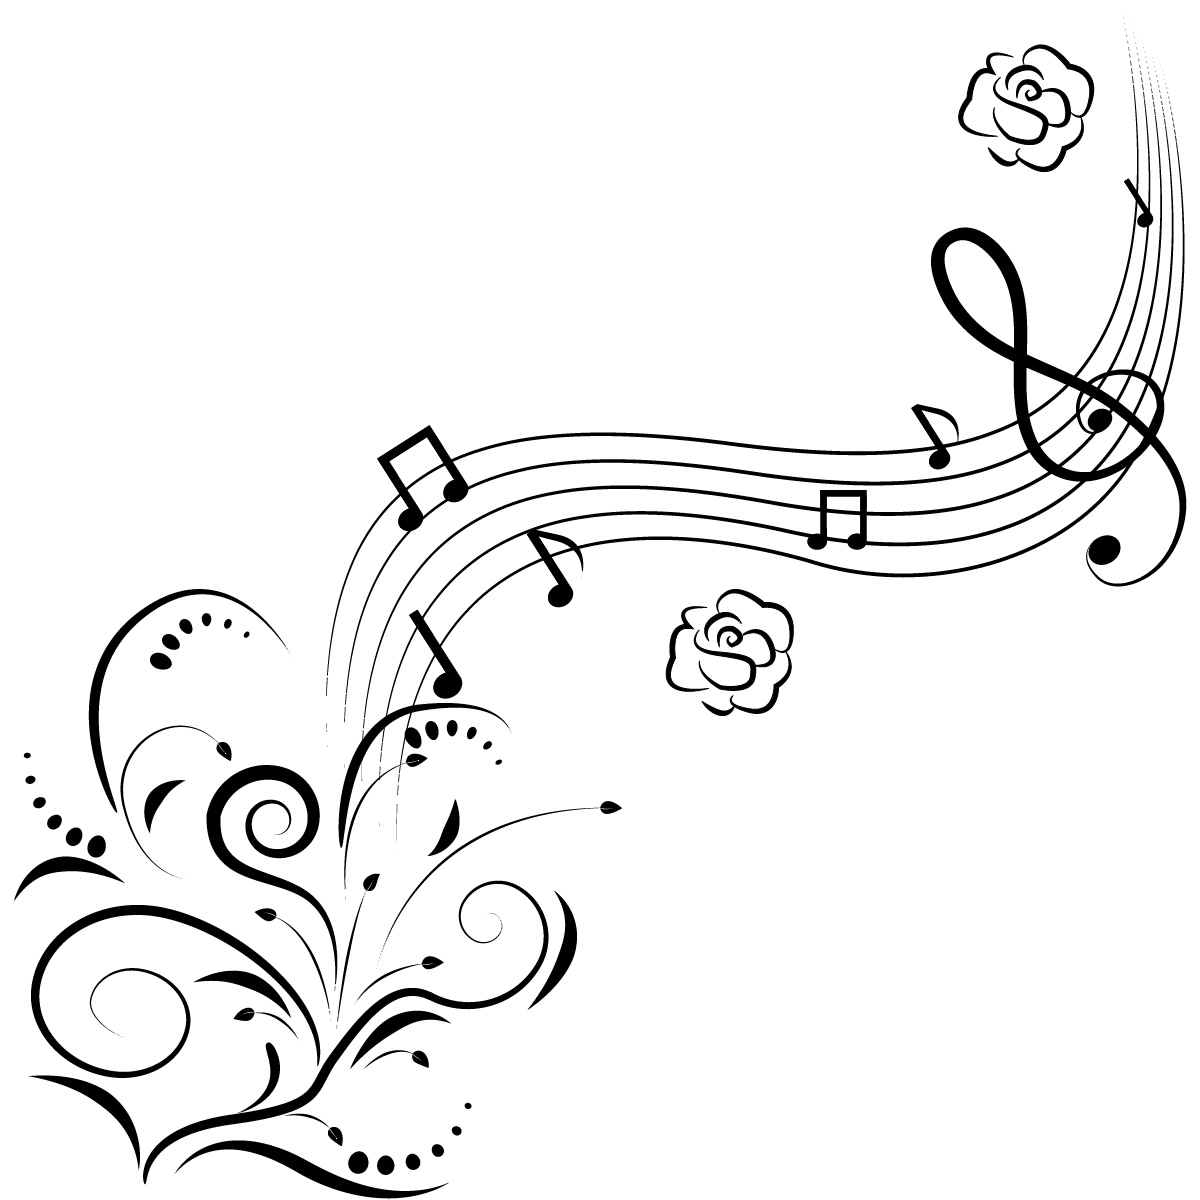 Music note border free music border image 5 musical note borders clipart clipartpost